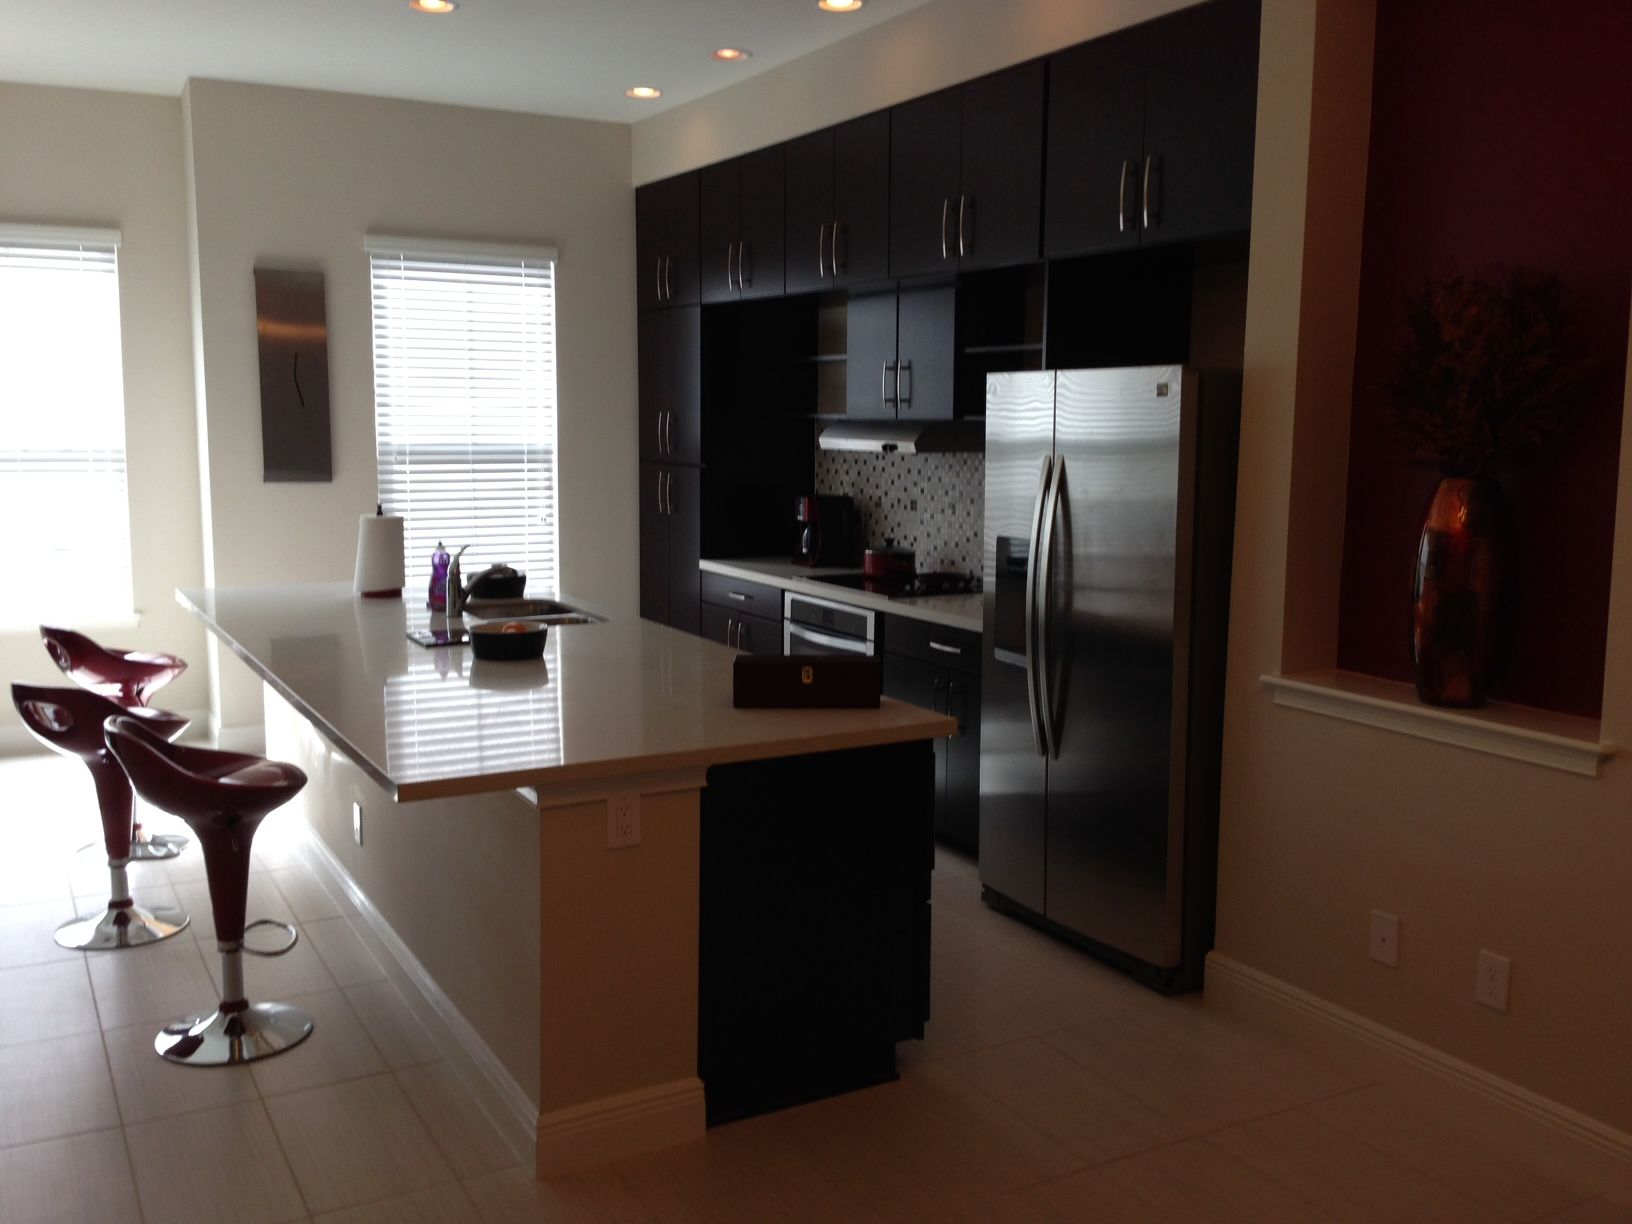 Townhouse in the SODO district in Orlando, Fl (With images